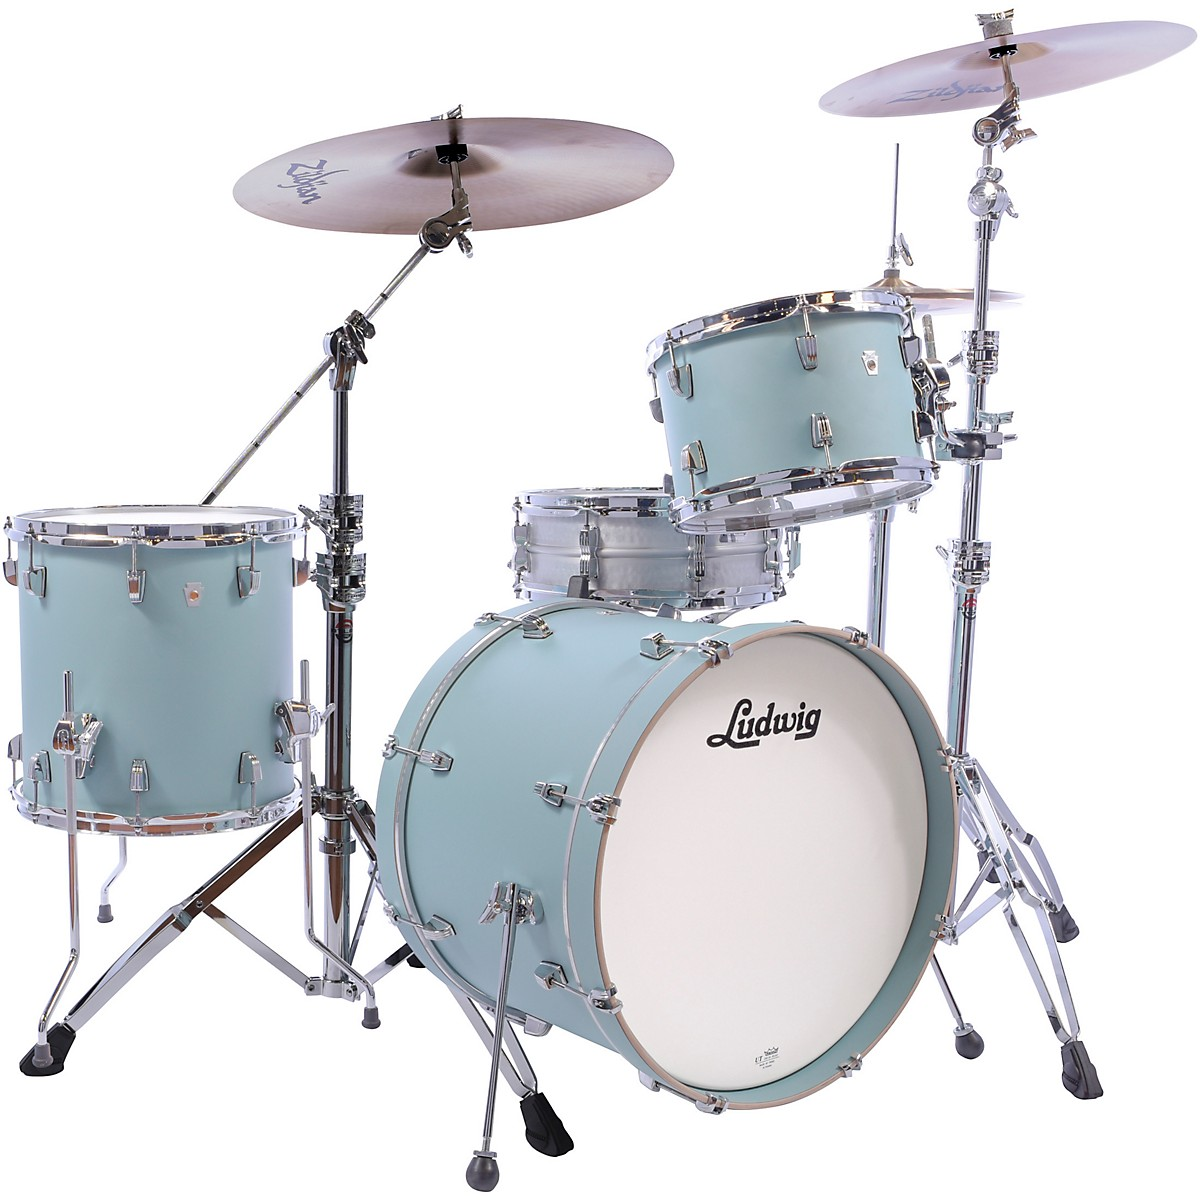 Ludwig NeuSonic 3-Piece Shell Pack with 20